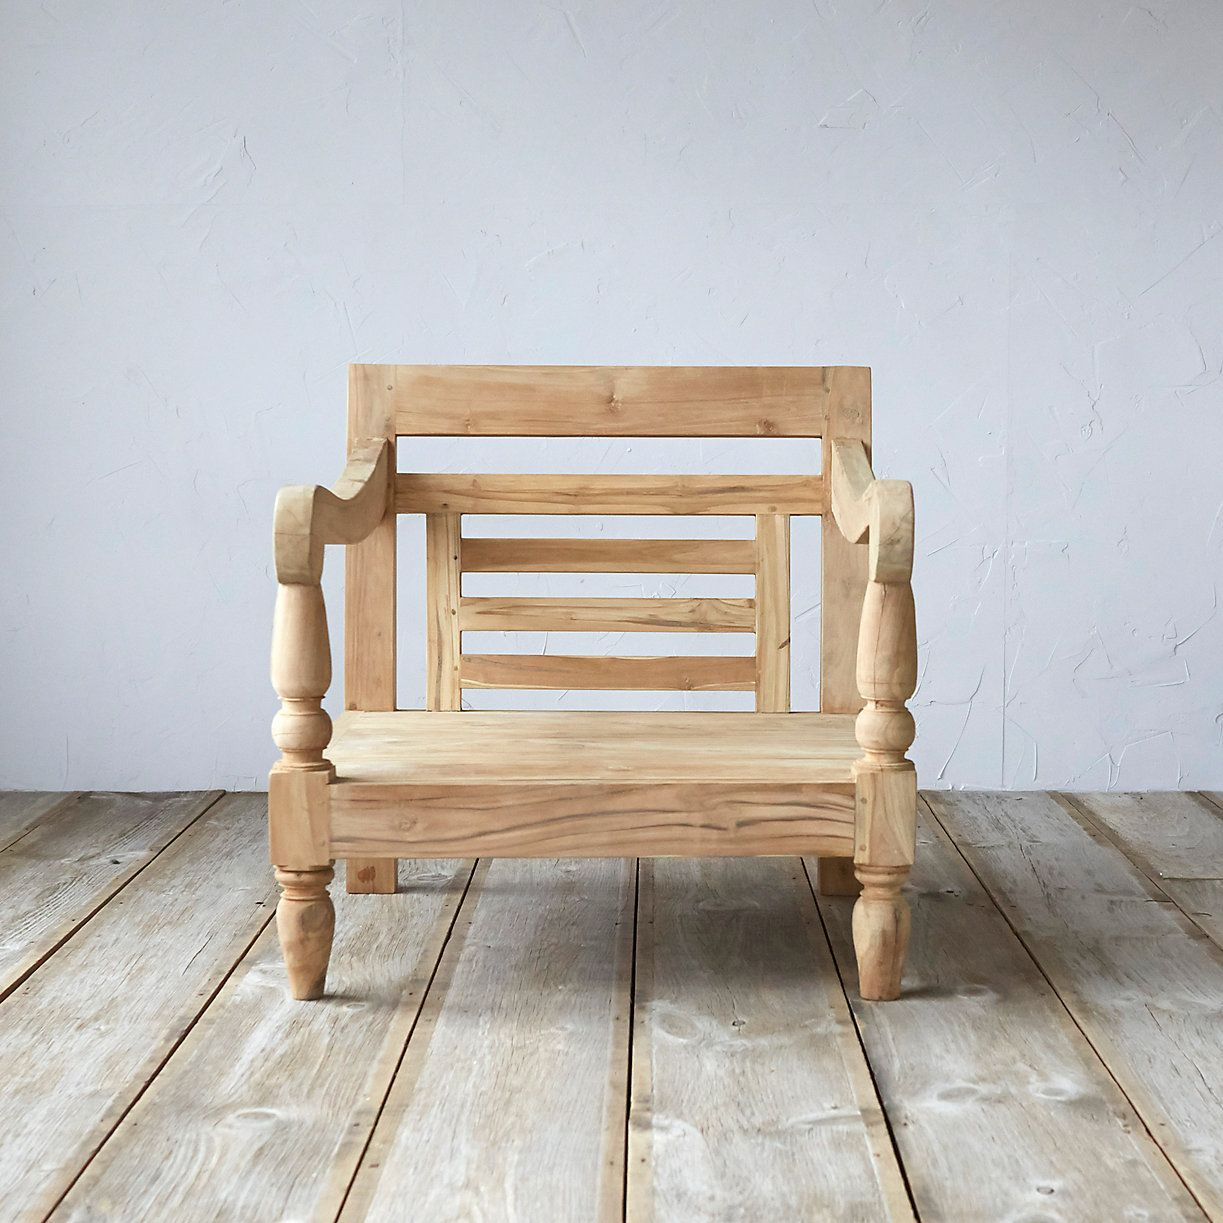 With Scrolled Arms Inspired By Traditional Javanese Carving This Natural Teak Chair Is An Elegant Addition To The Patio Un Outdoor Cushions Teak Teak Chairs